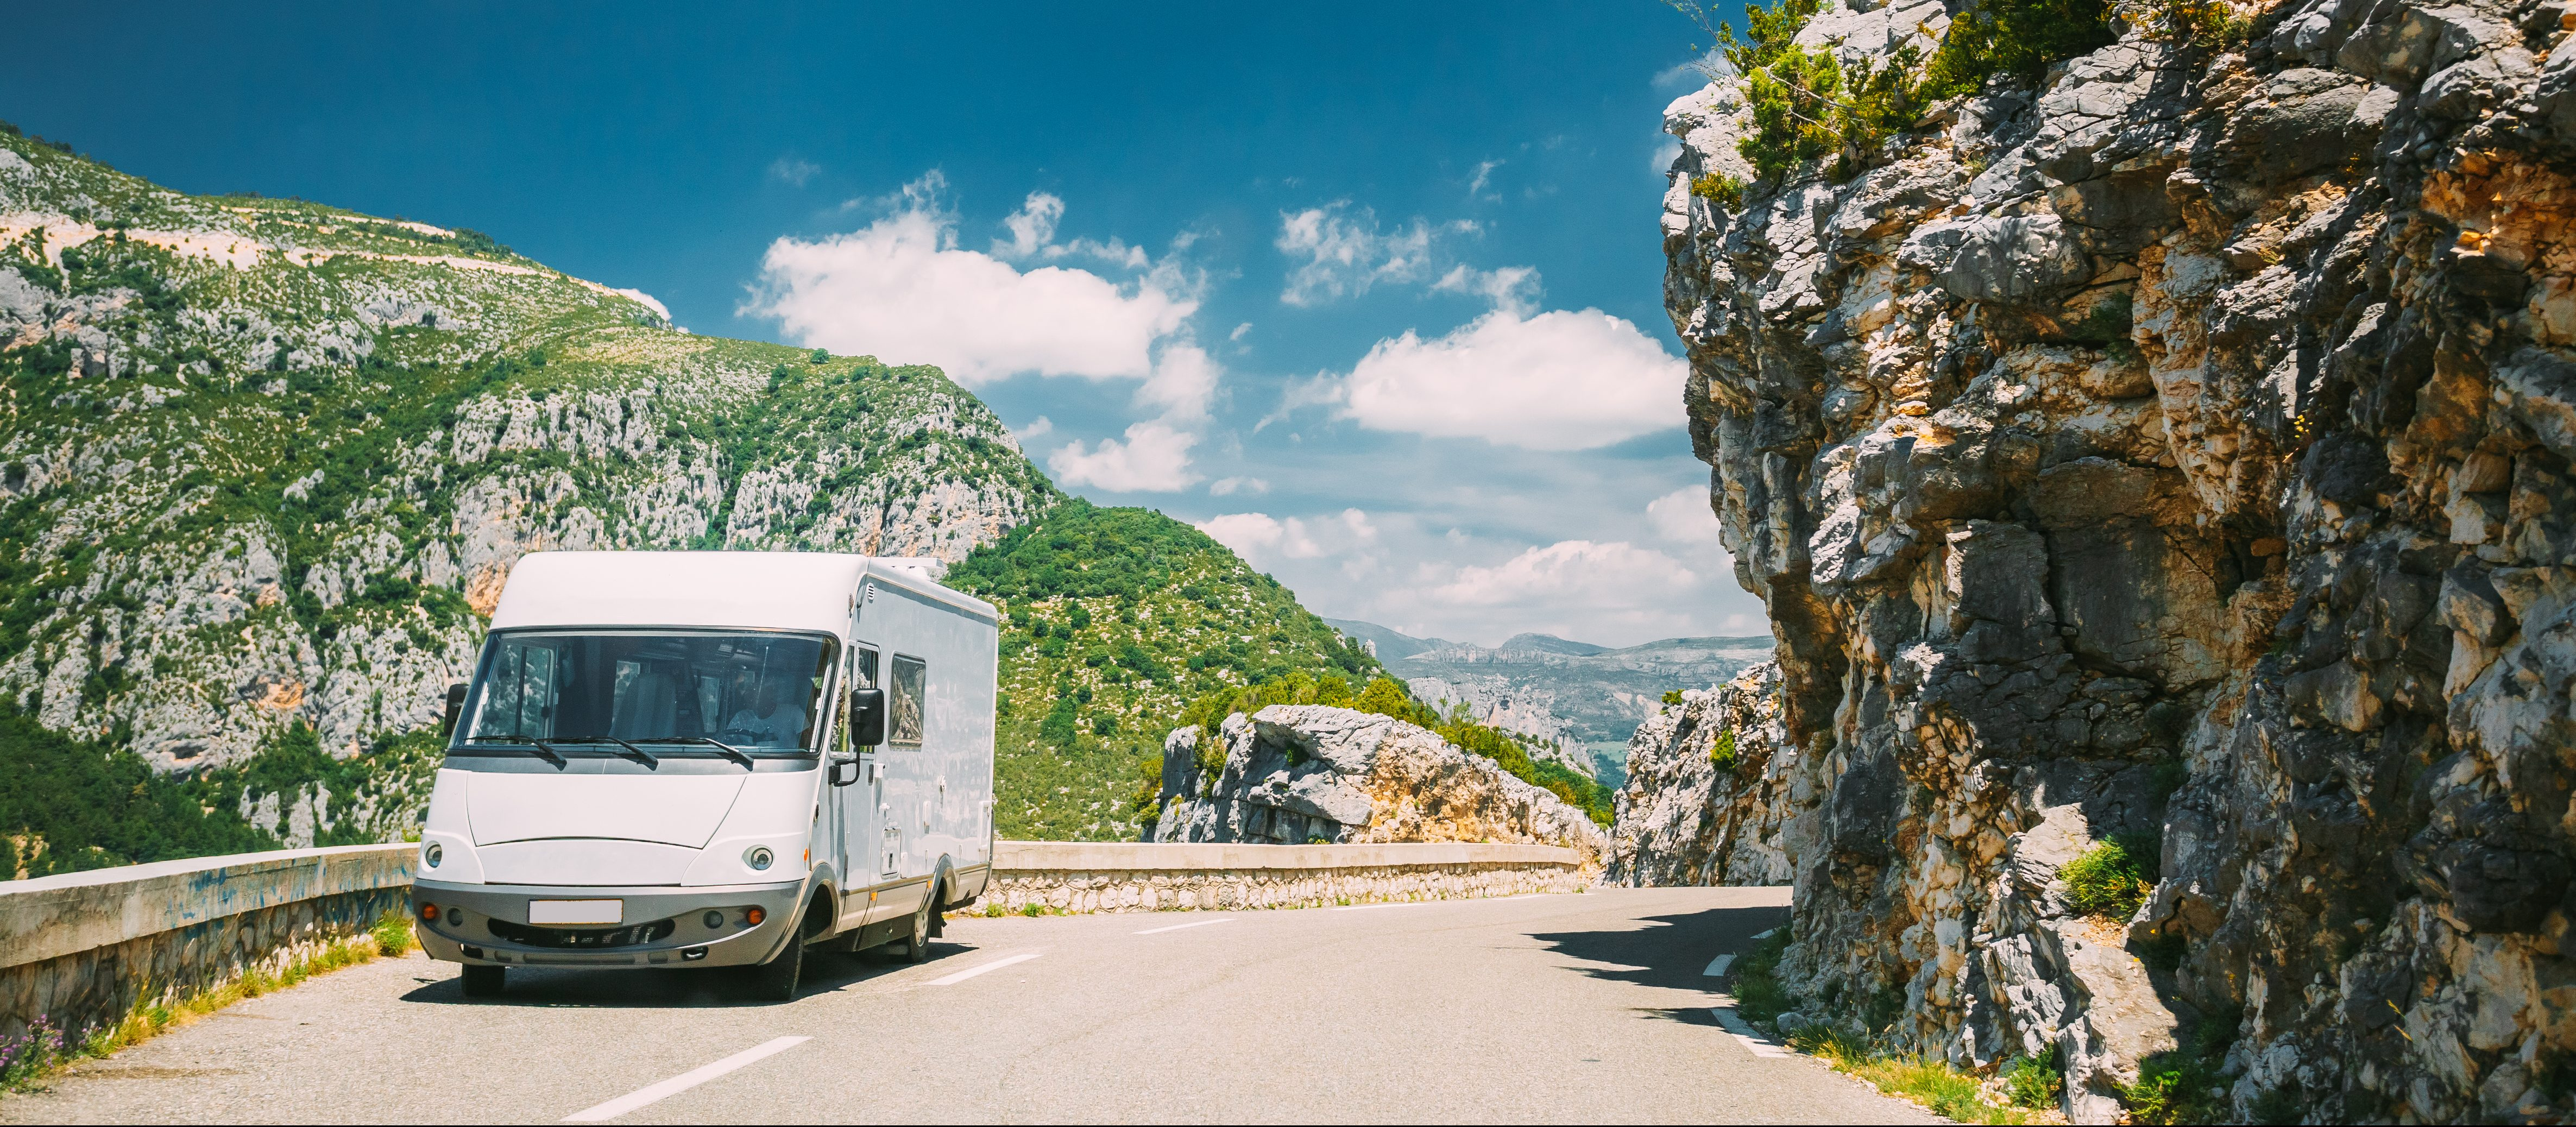 The definitive guide to RV living